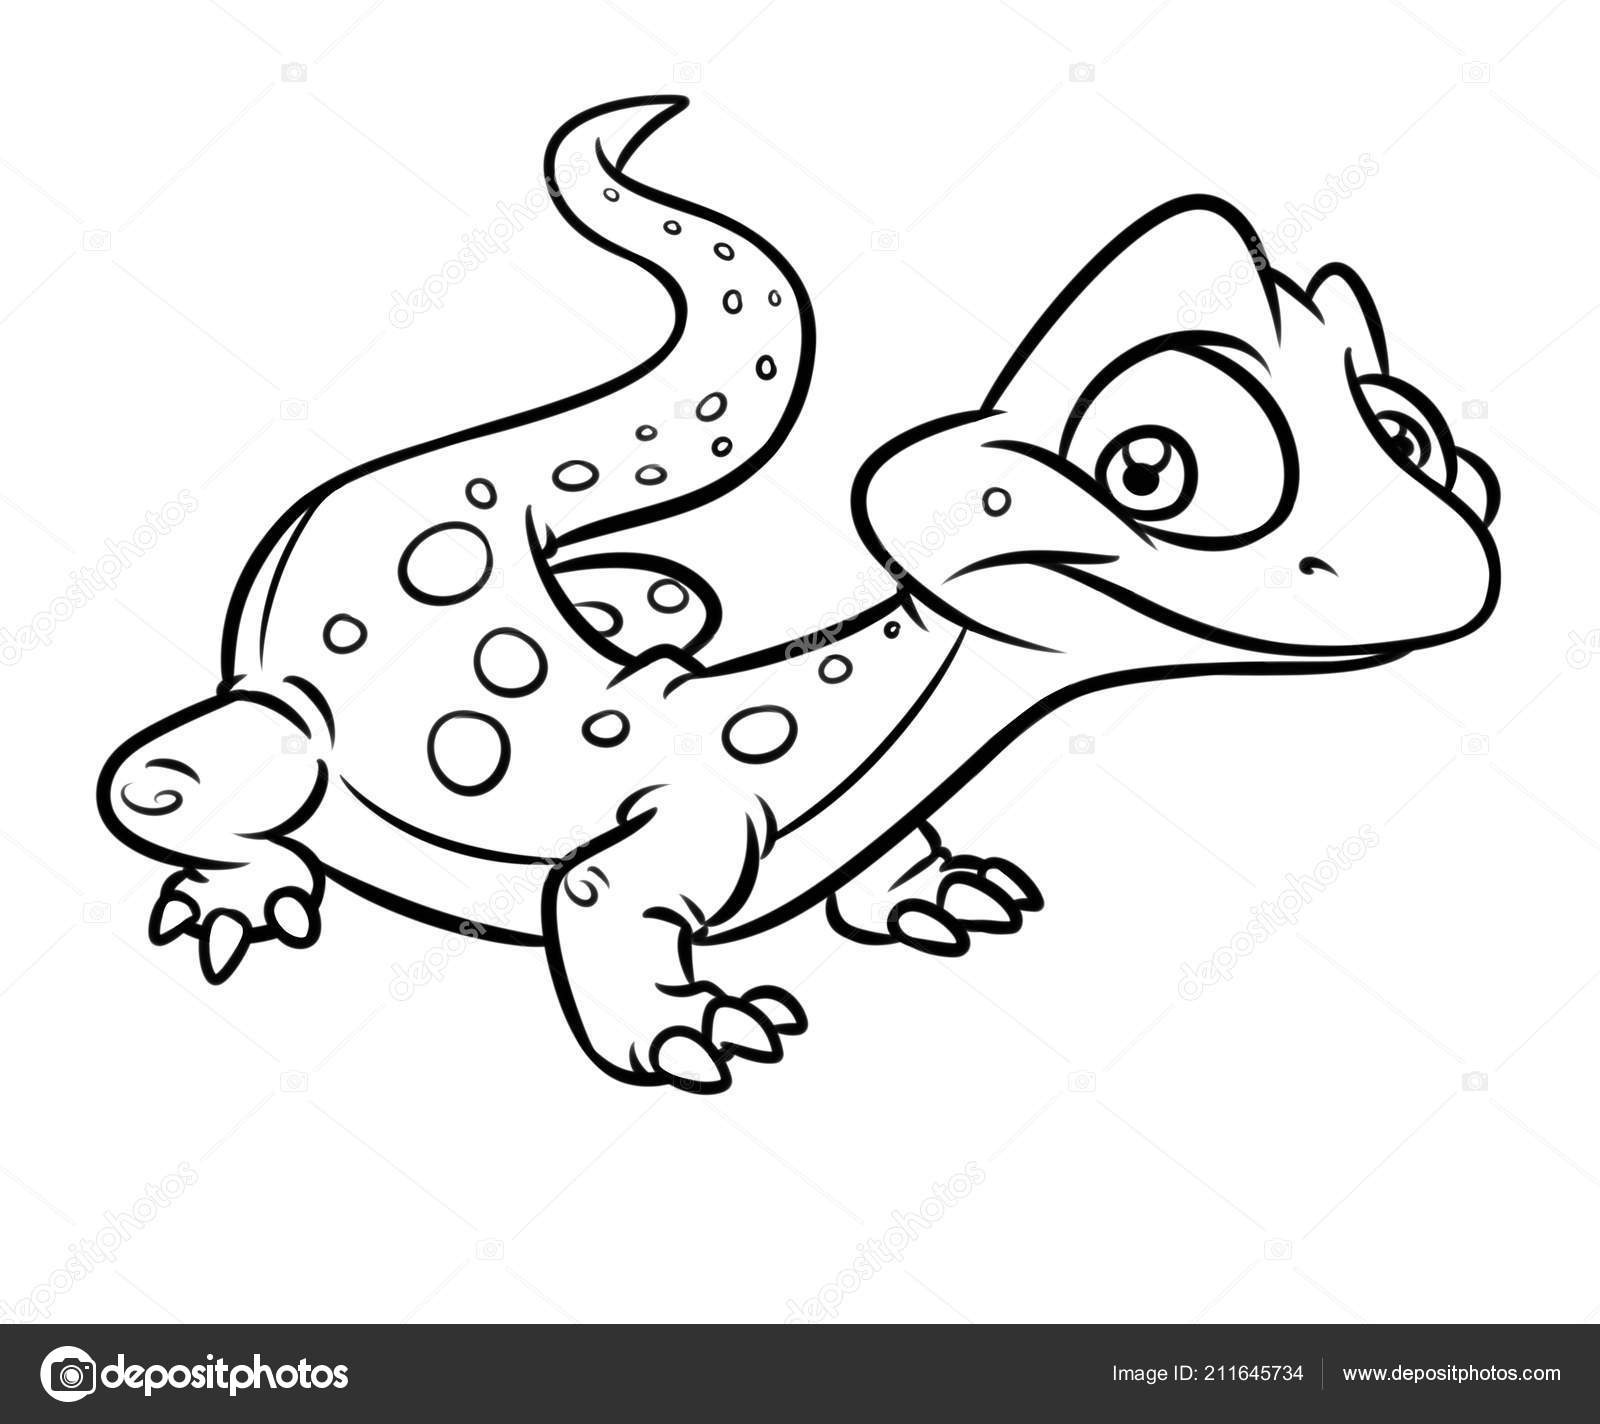 picture of a lizard to colour in animal coloring pages lizard coloring pages lizard to of picture colour a in